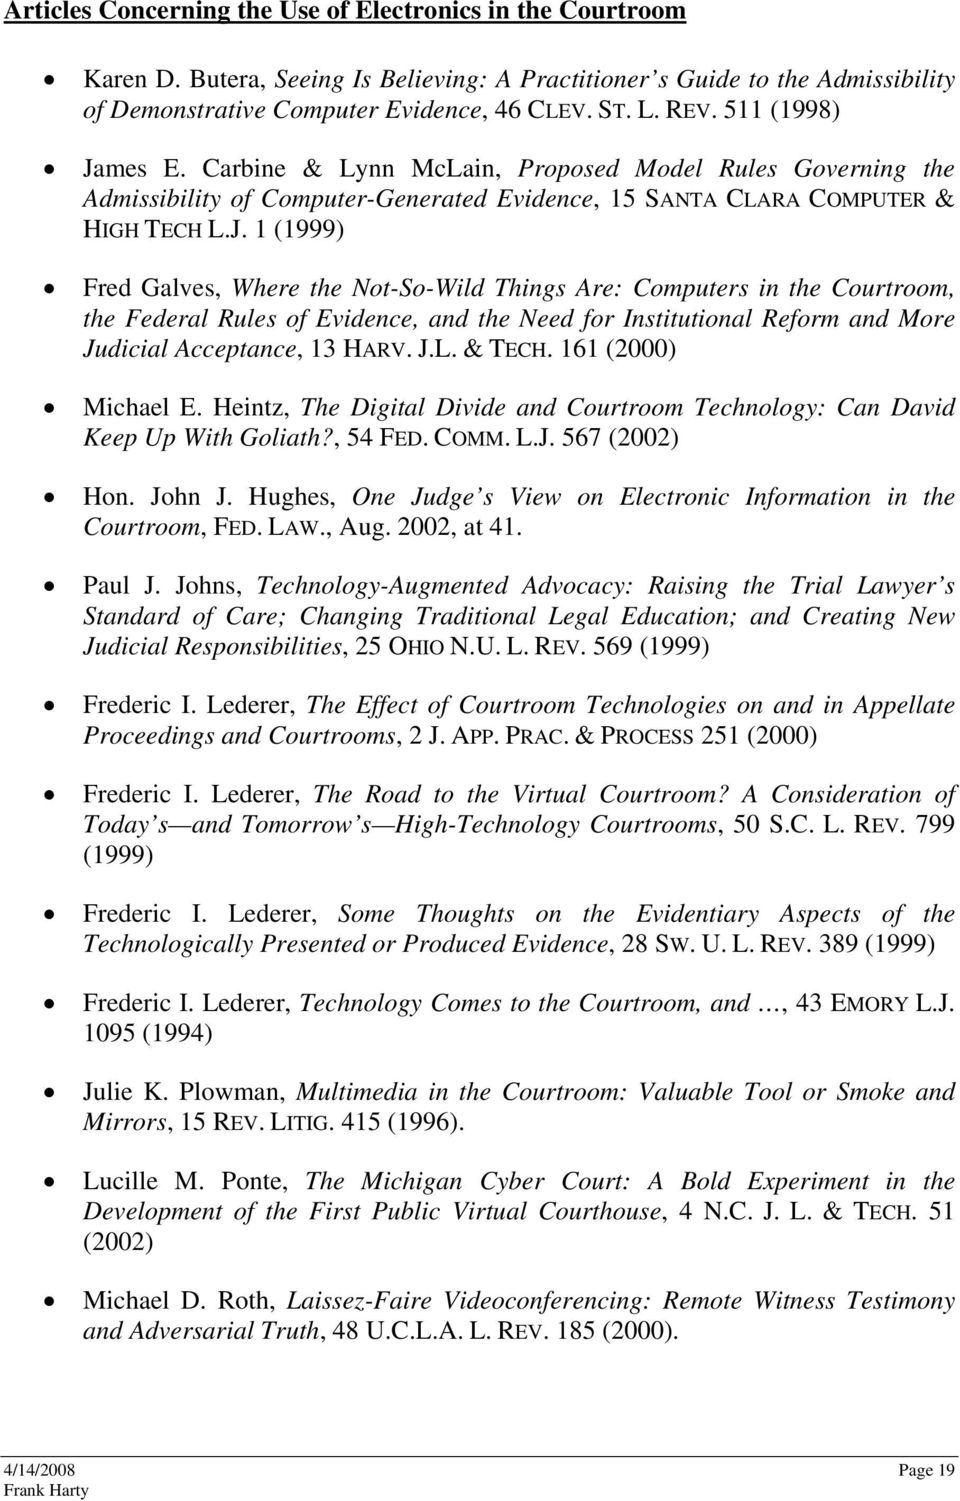 mes E. Carbine & Lynn McLain, Proposed Model Rules Governing the Admissibility of Computer-Generated Evidence, 15 SANTA CLARA COMPUTER & HIGH TECH L.J.